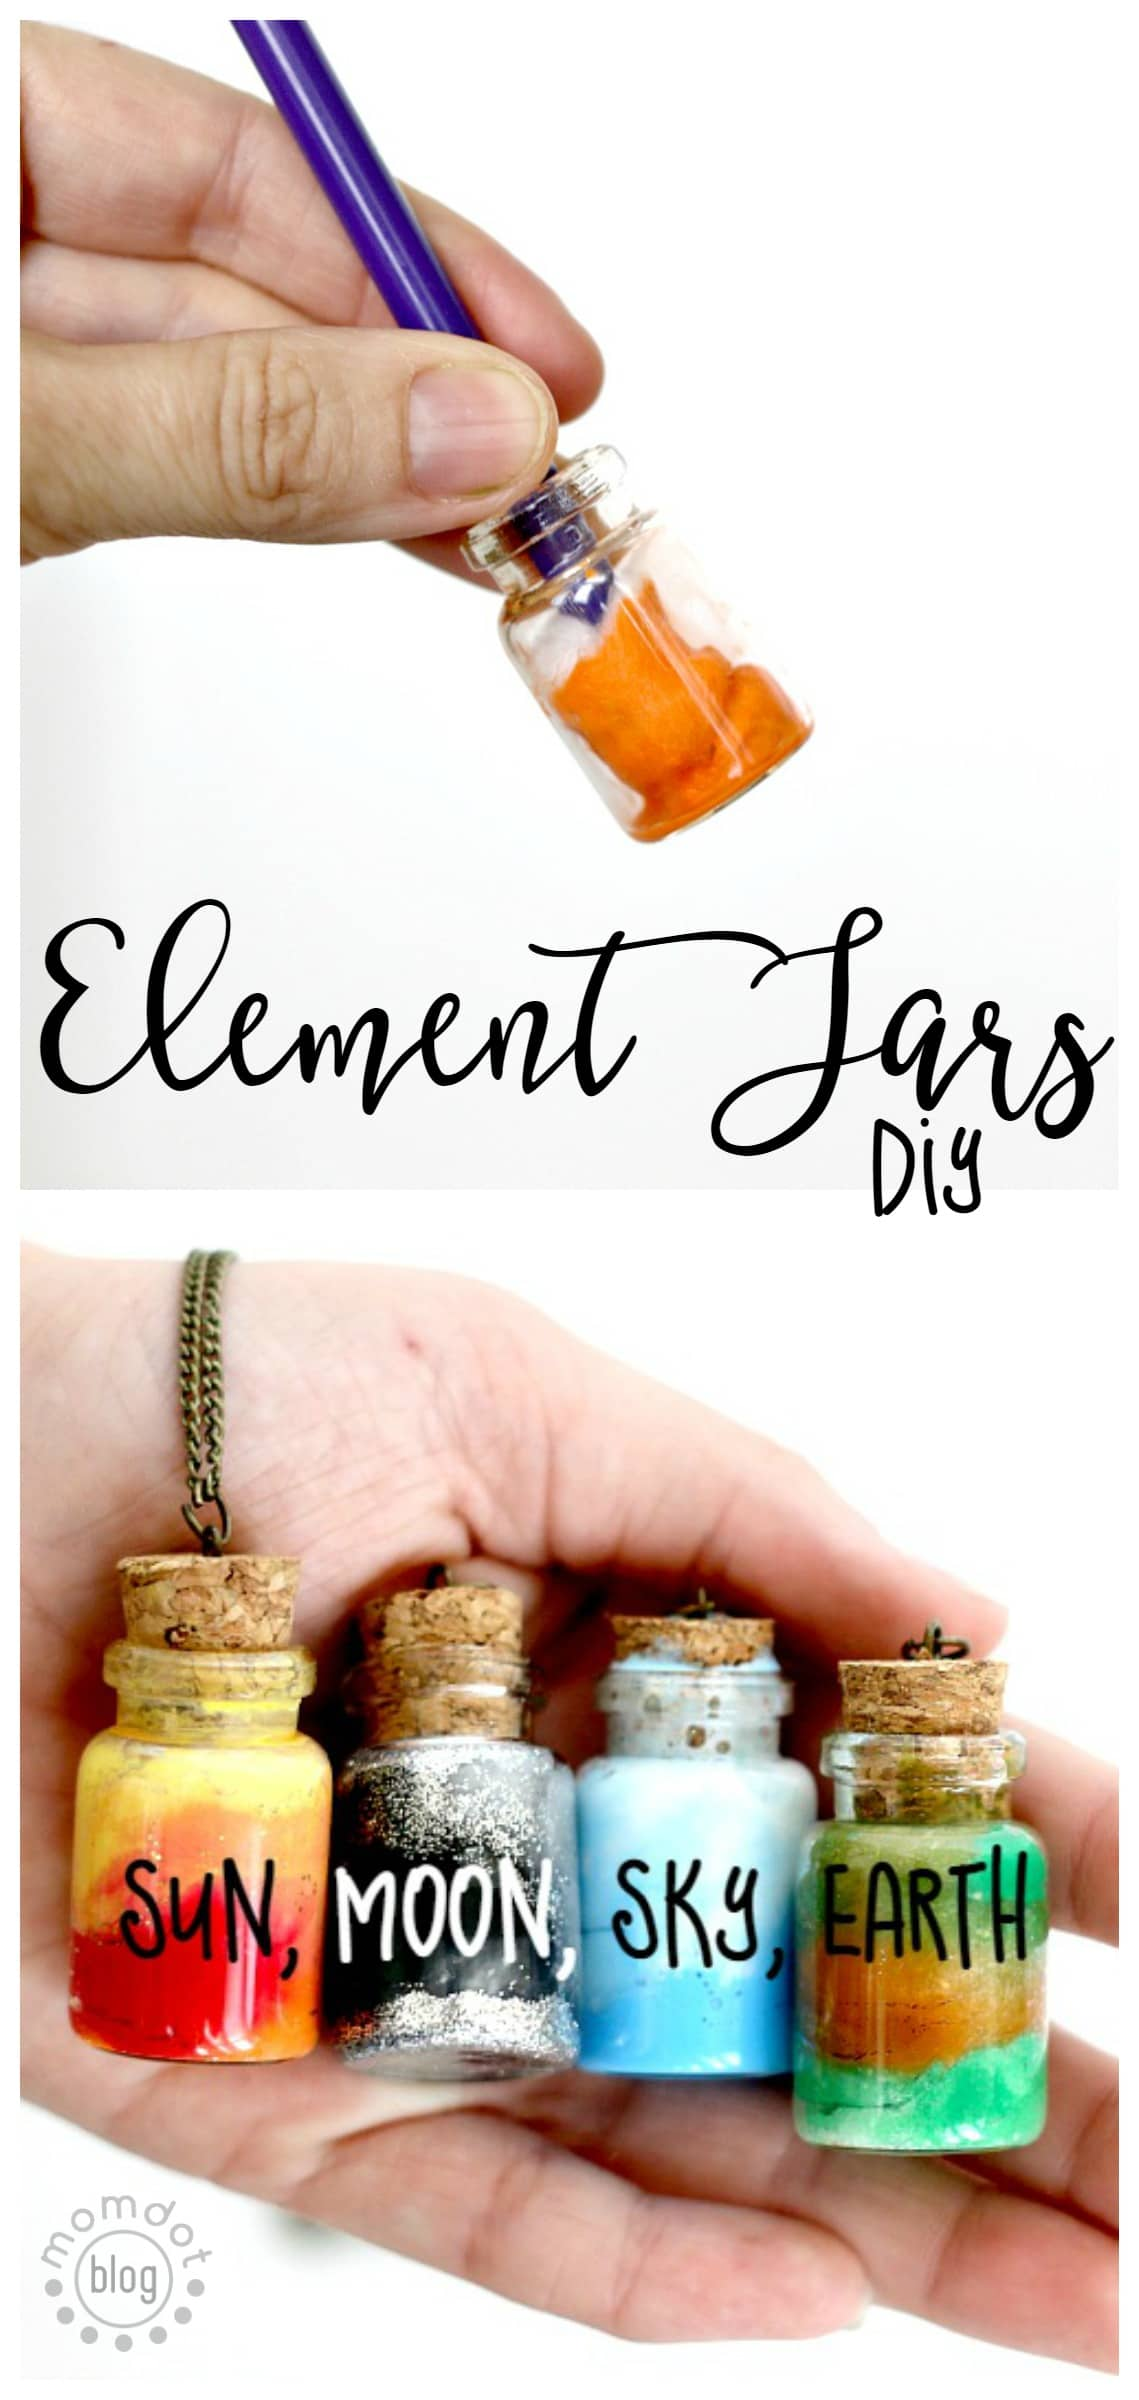 Element Jars: Create Sun, Moon, Earth, and Sky in these fun DIY Element Jar Necklaces Tutorial, picture instructions, Nebula Jar